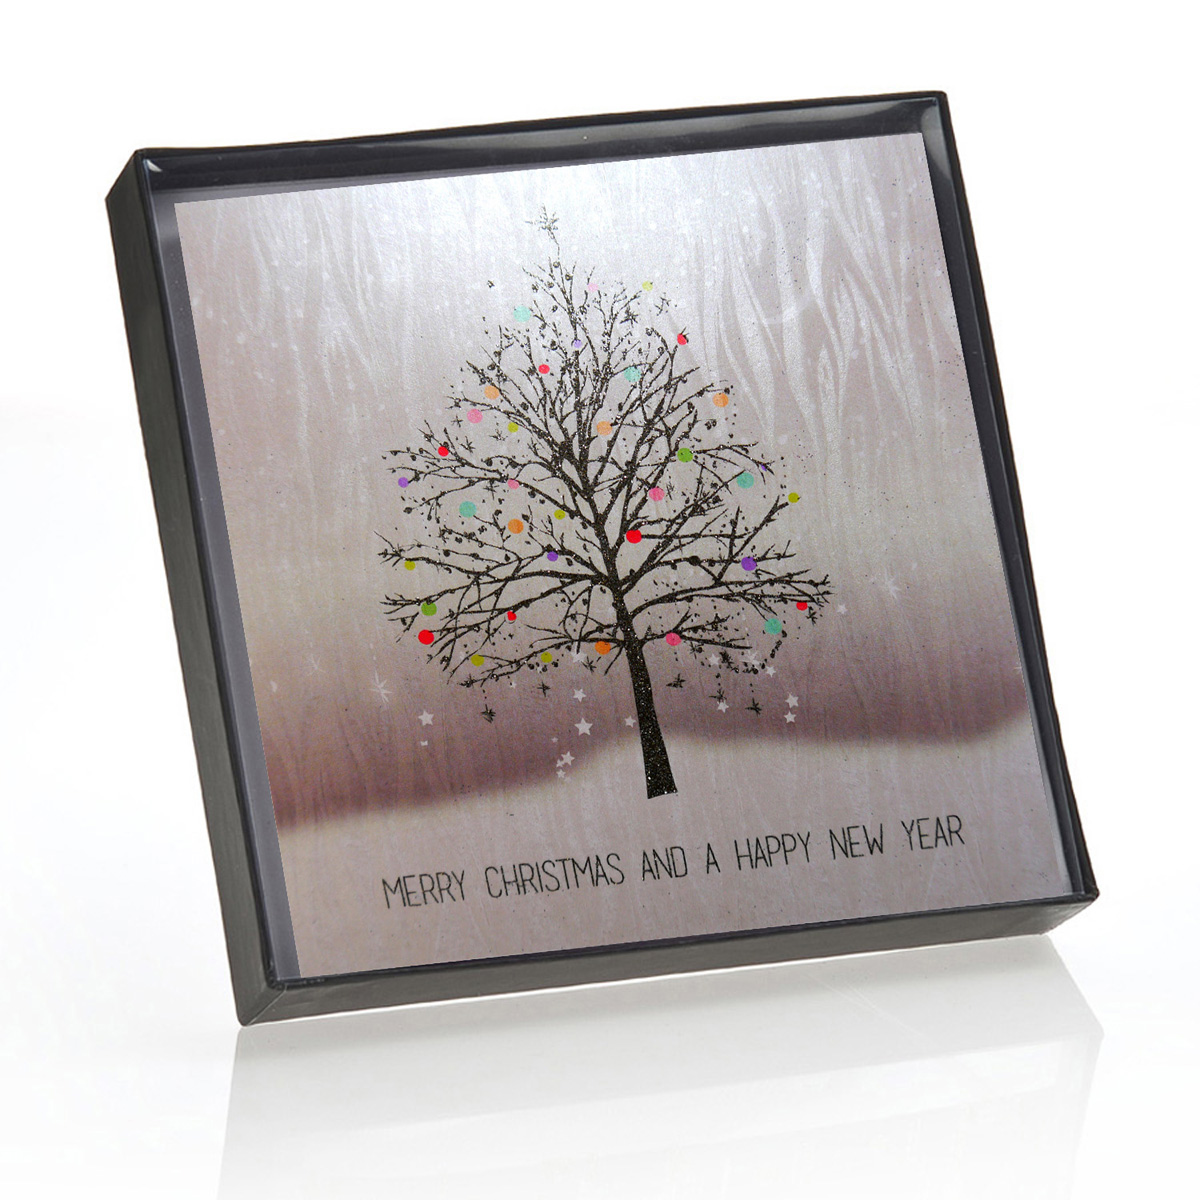 Merry Christmas Happy New Year Boxed Christmas Cards